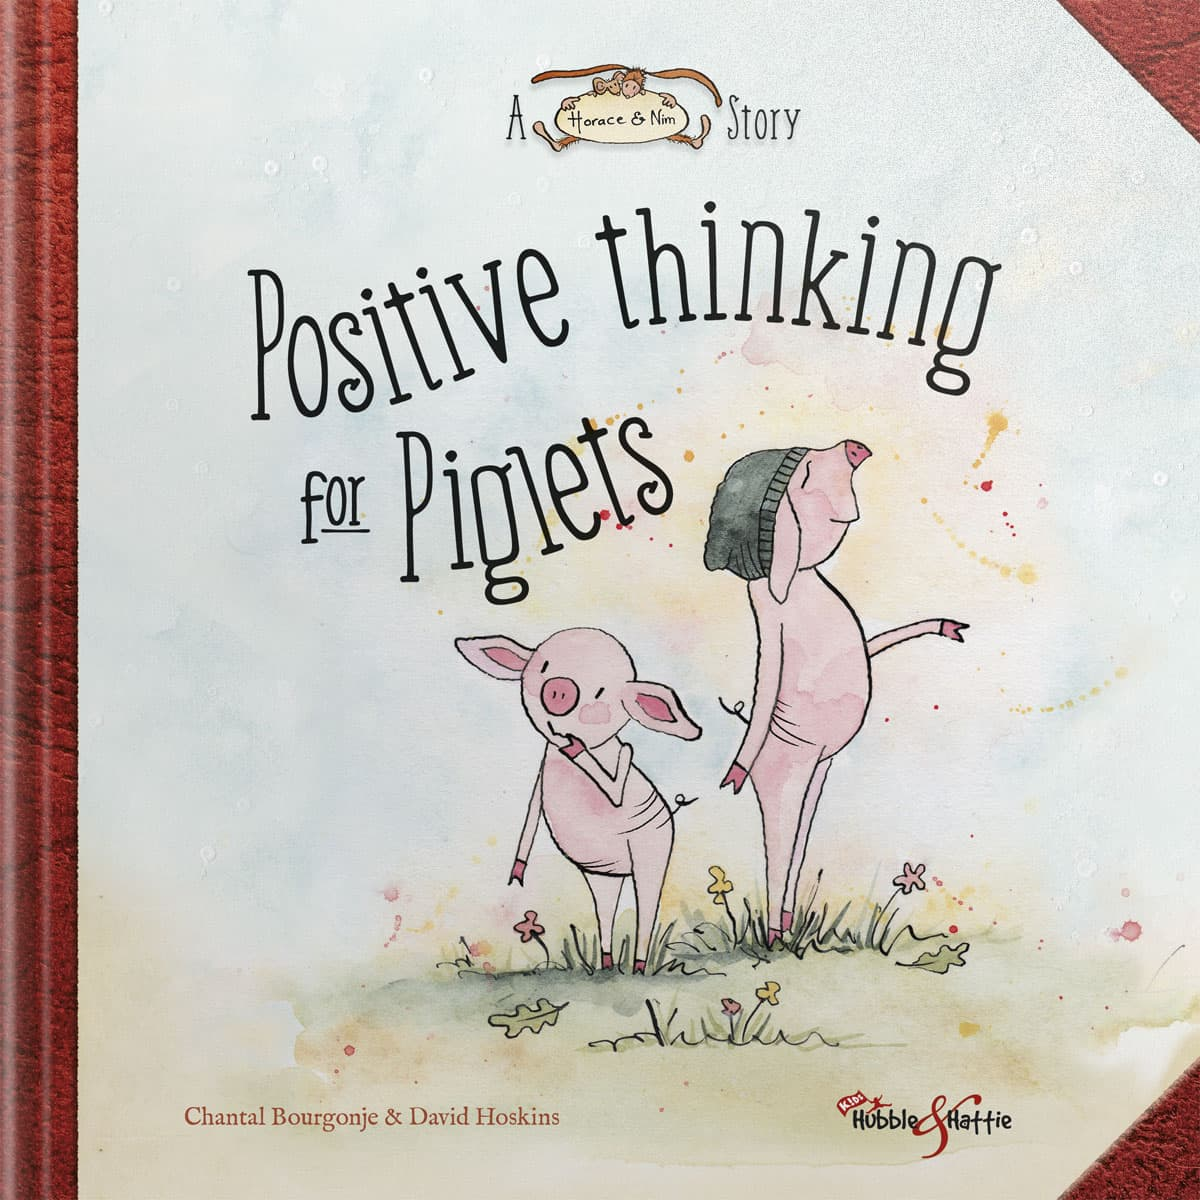 Positive thinking for Piglets –A Horace & Nim Story